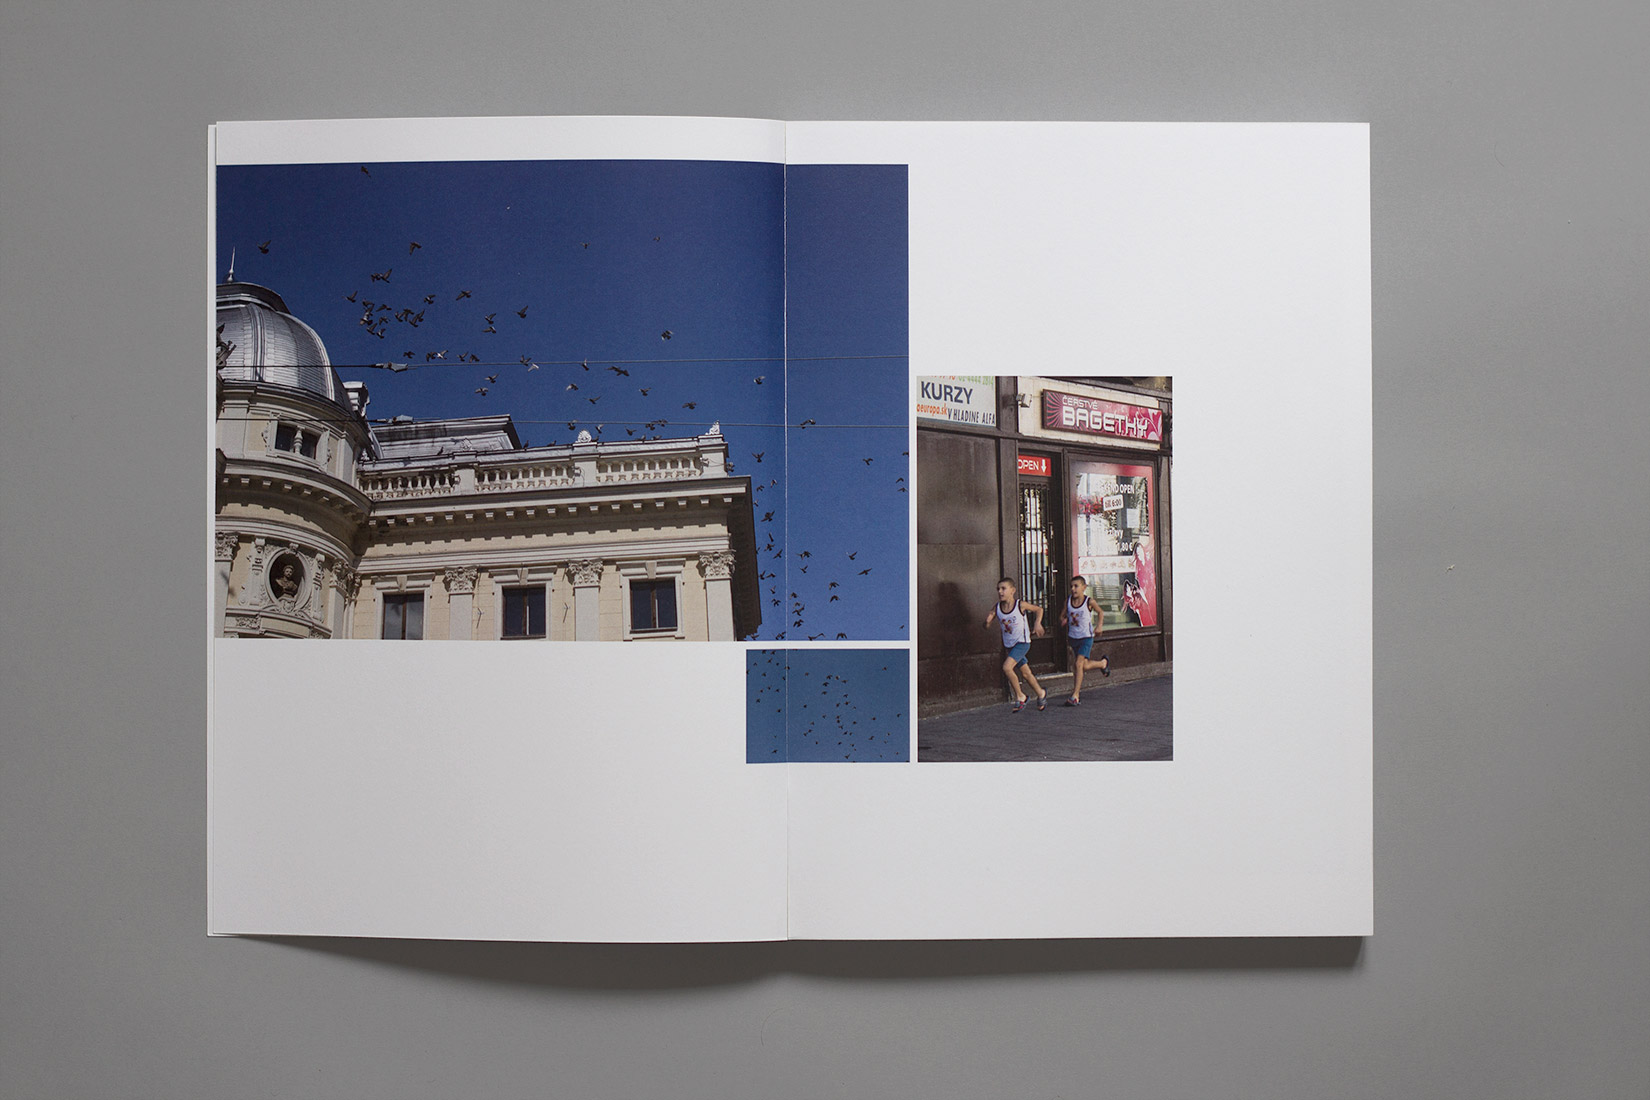 Study trip, book, Bratislava, photography, child running